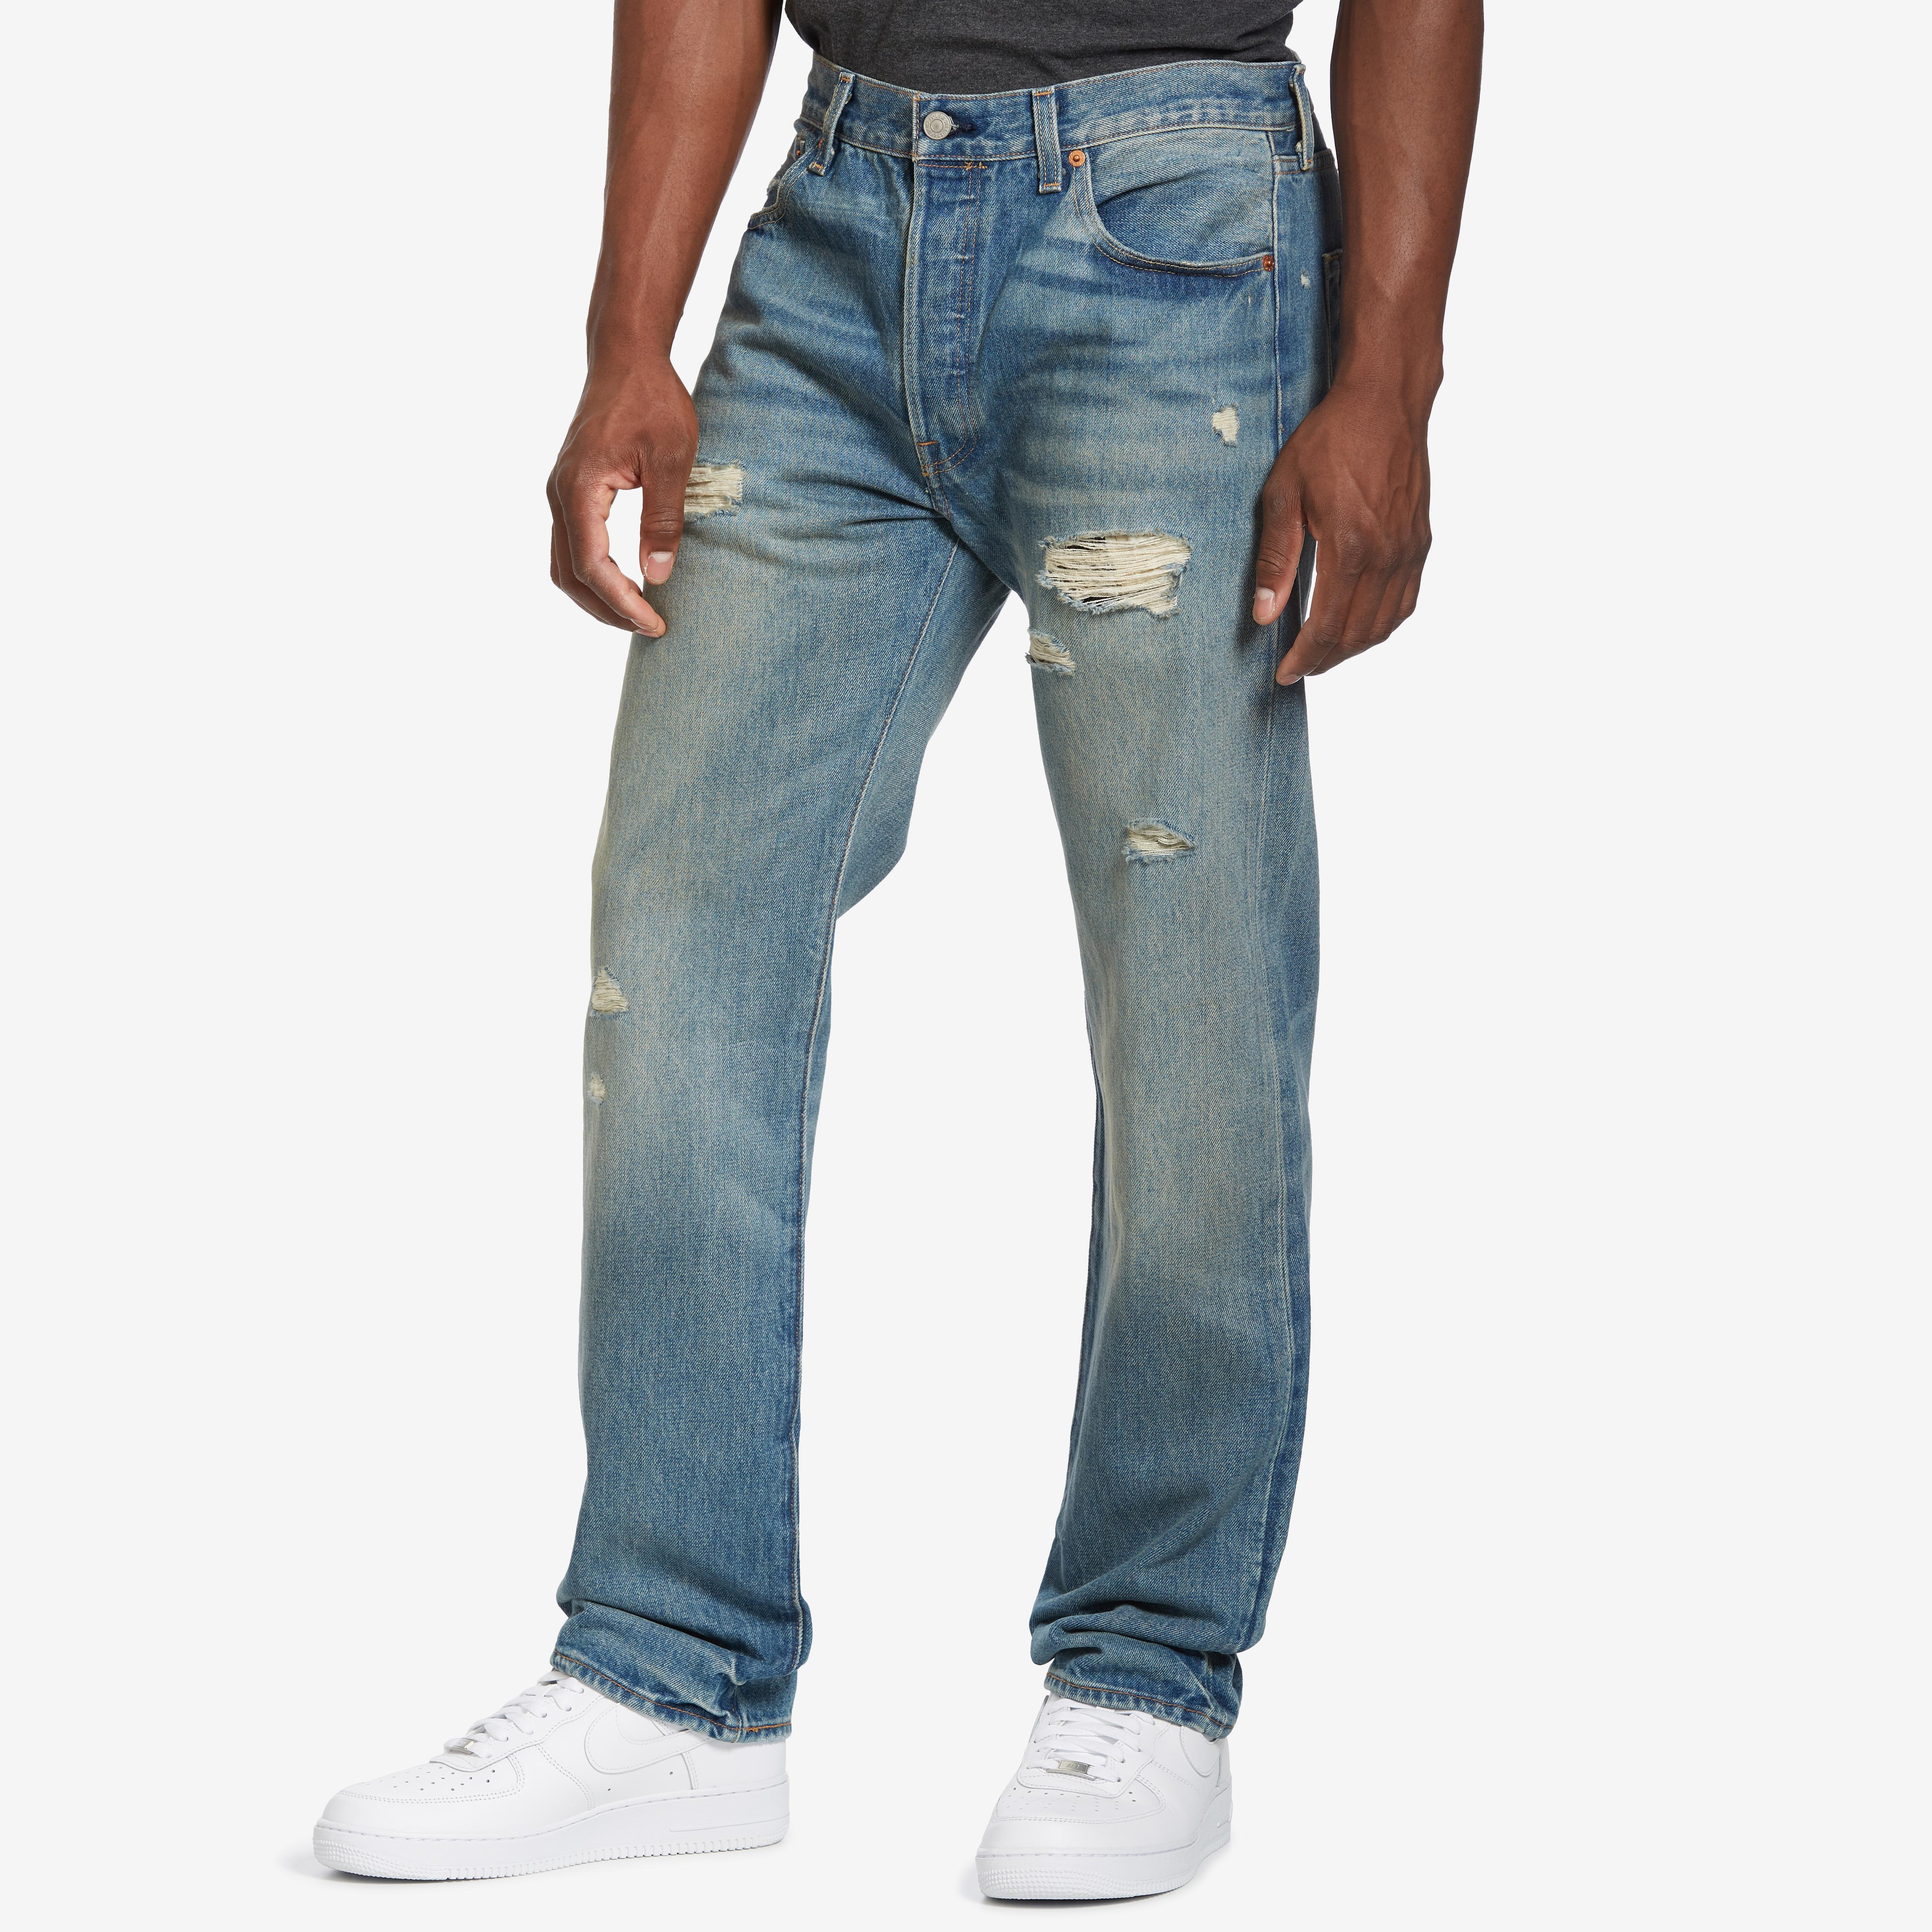 501 Torn Up Jeans